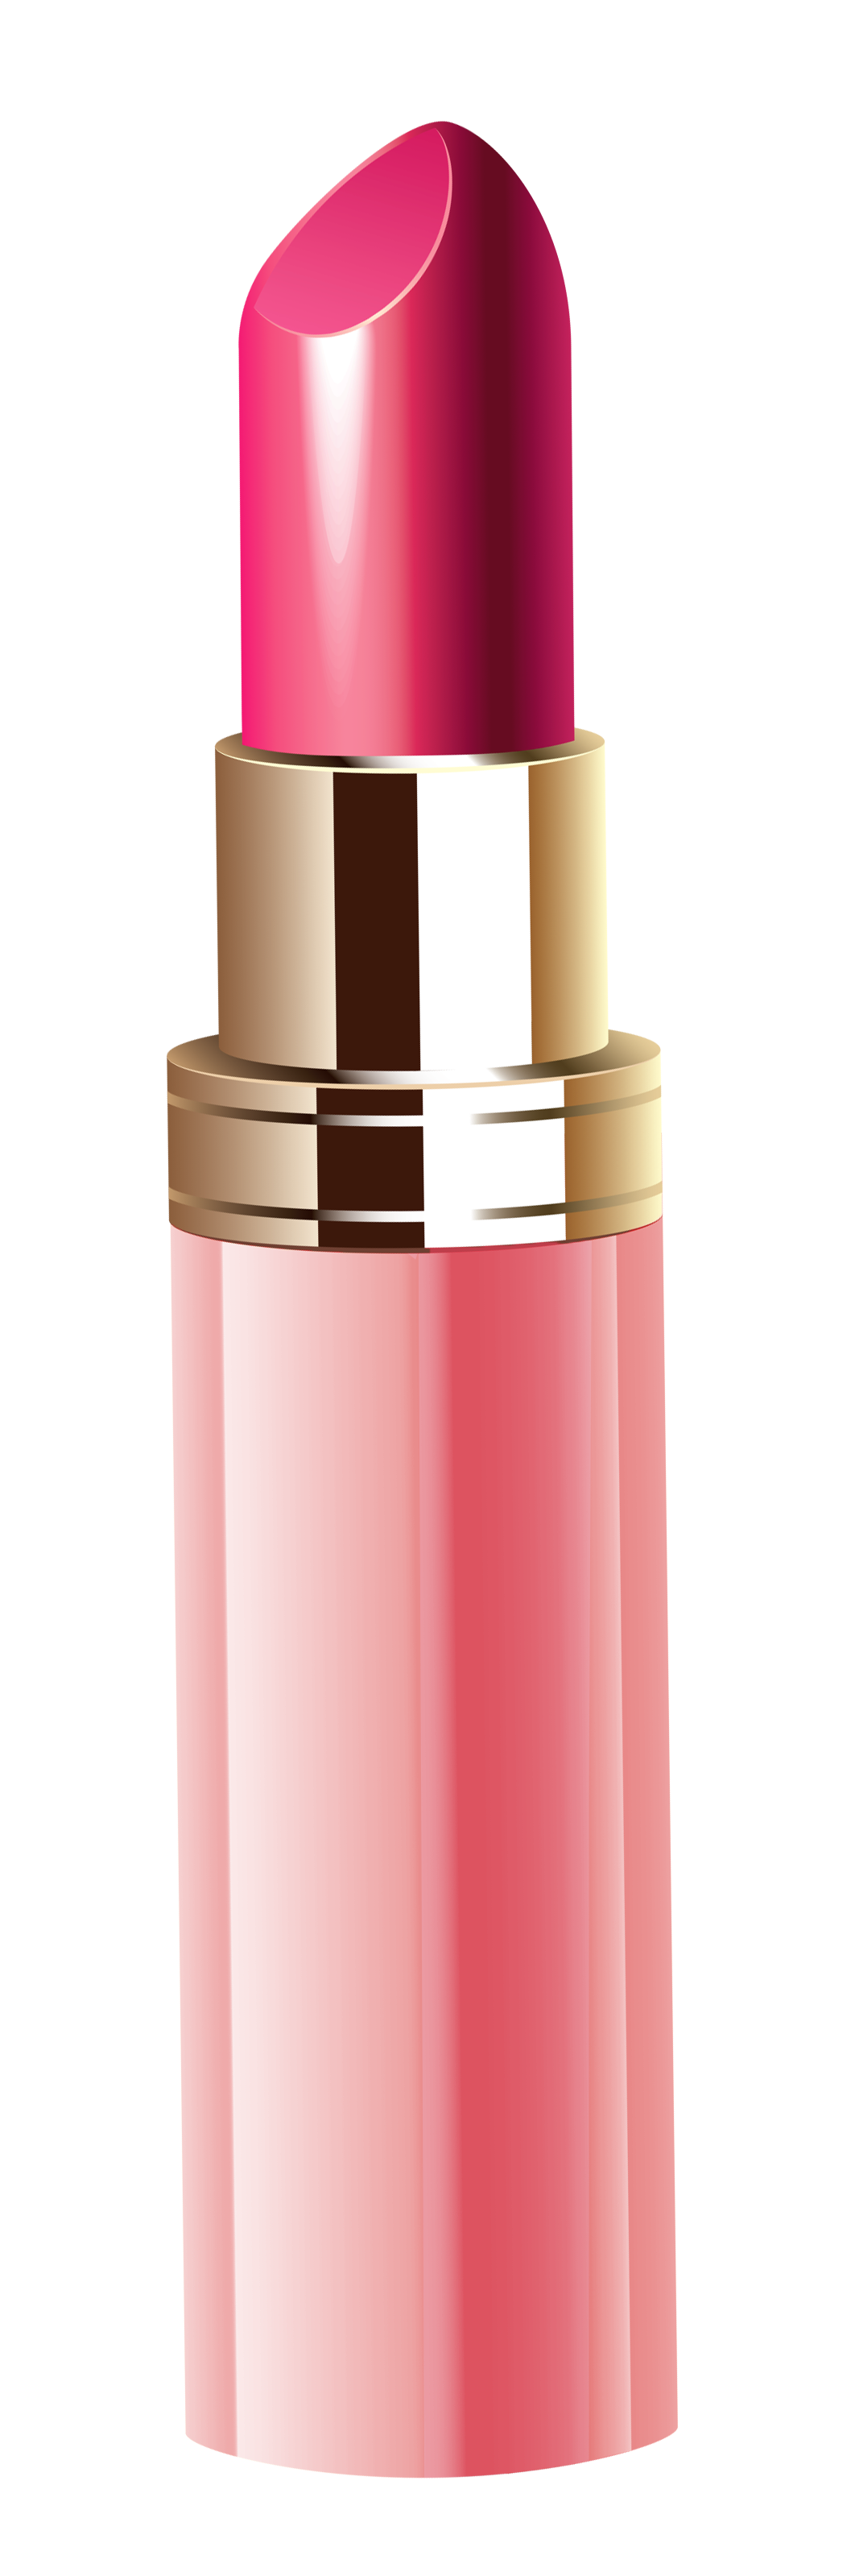 Lipstick clipart pink lipstick.  collection of high